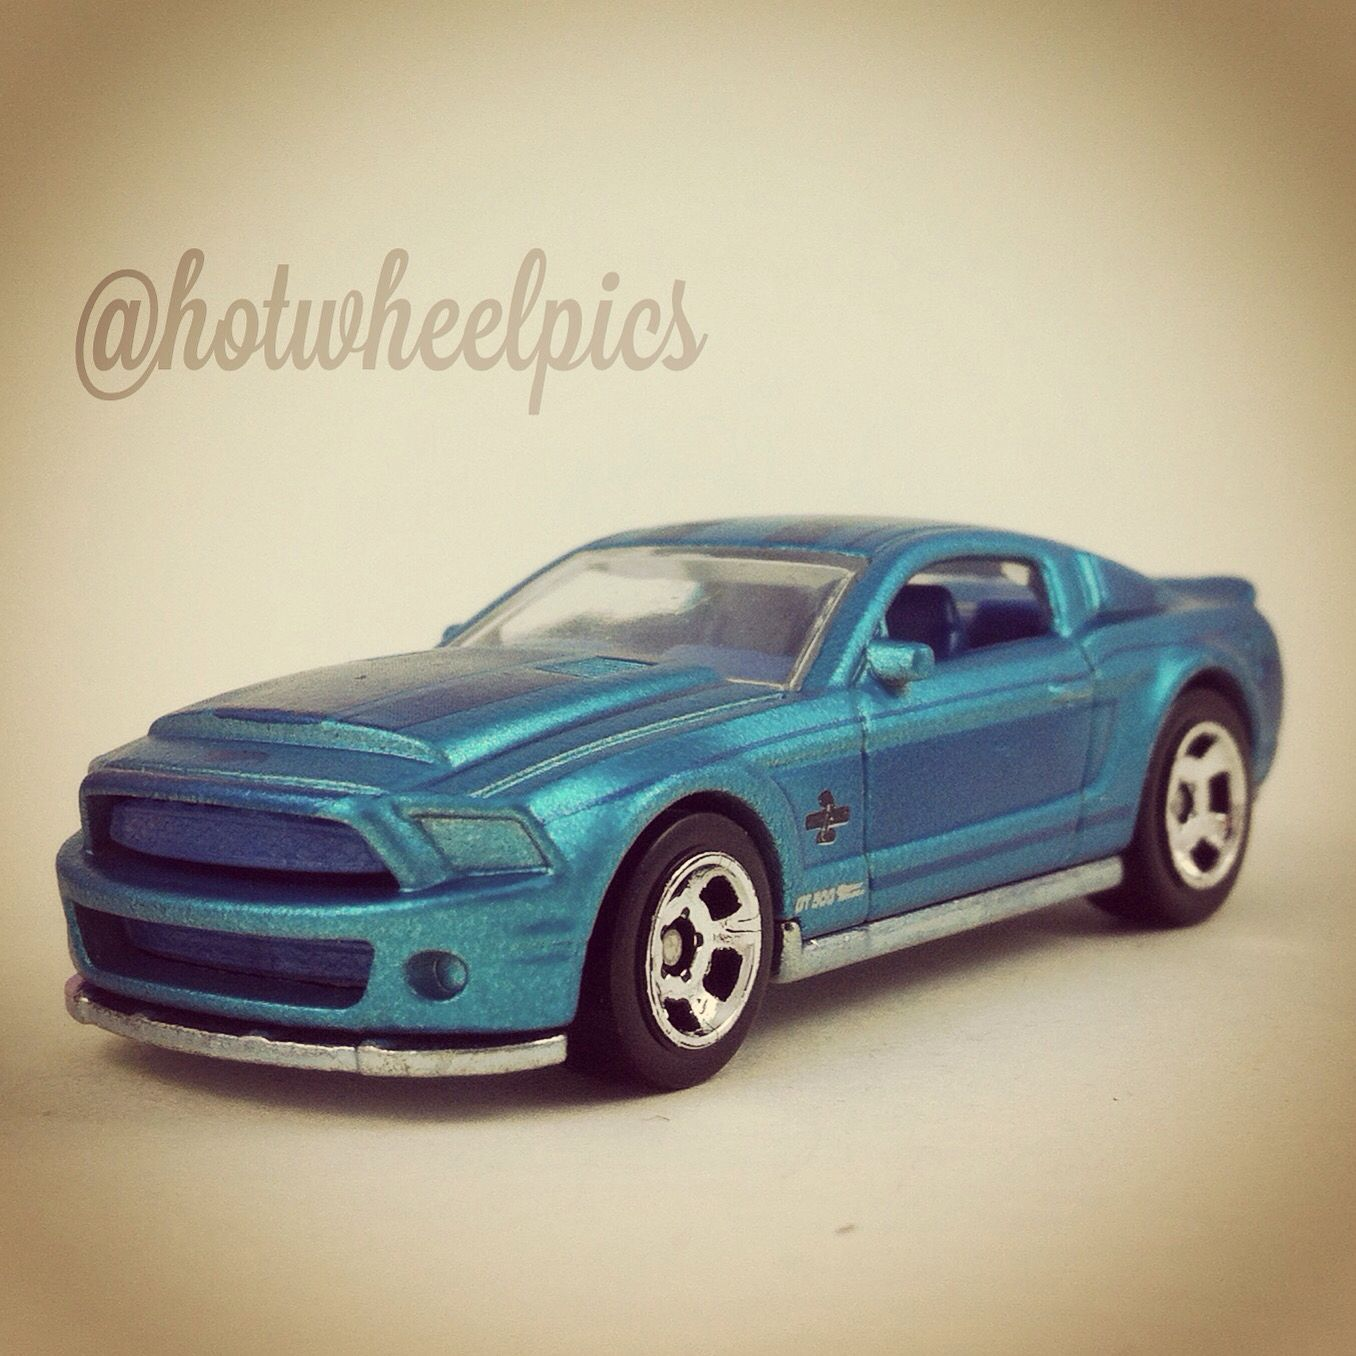 Shelby Gt500 Super Snake 2015 Hot Wheels Cool Classics Hotwheels Diecast Toys Ford Shelby Mustang Hot Wheels Super Snake Ford Gt